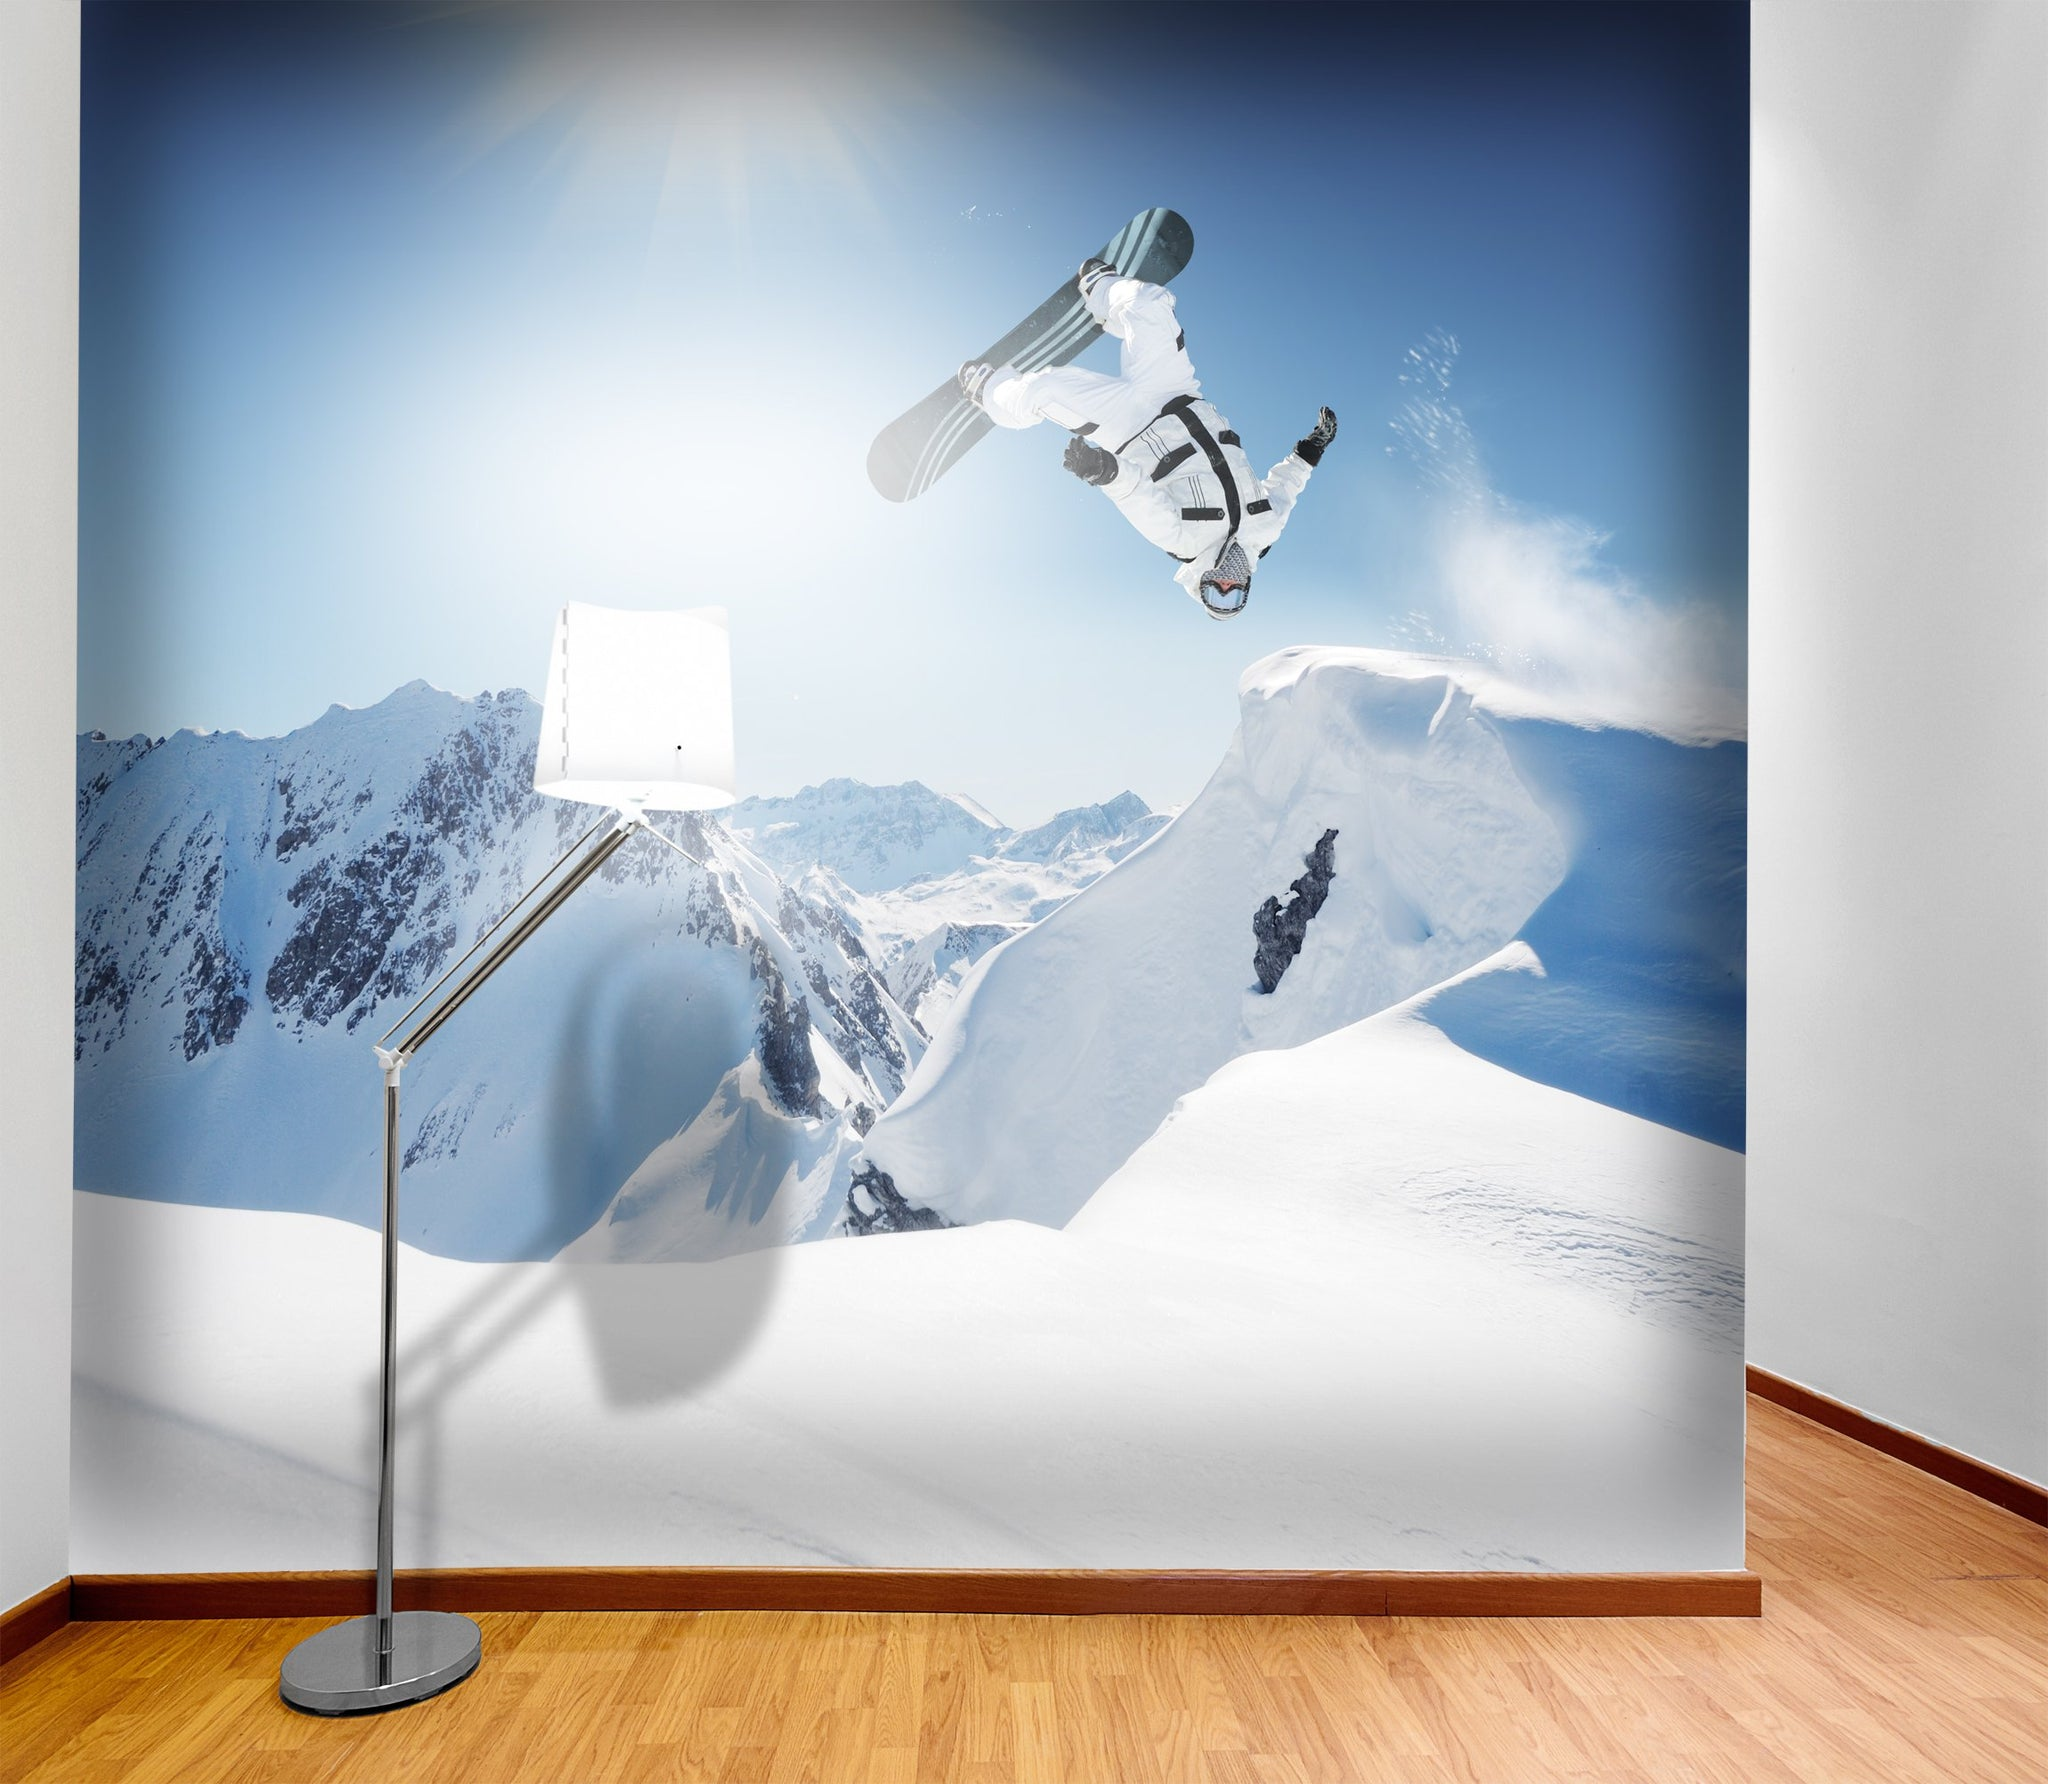 Wallpaper Snowboarder SW172